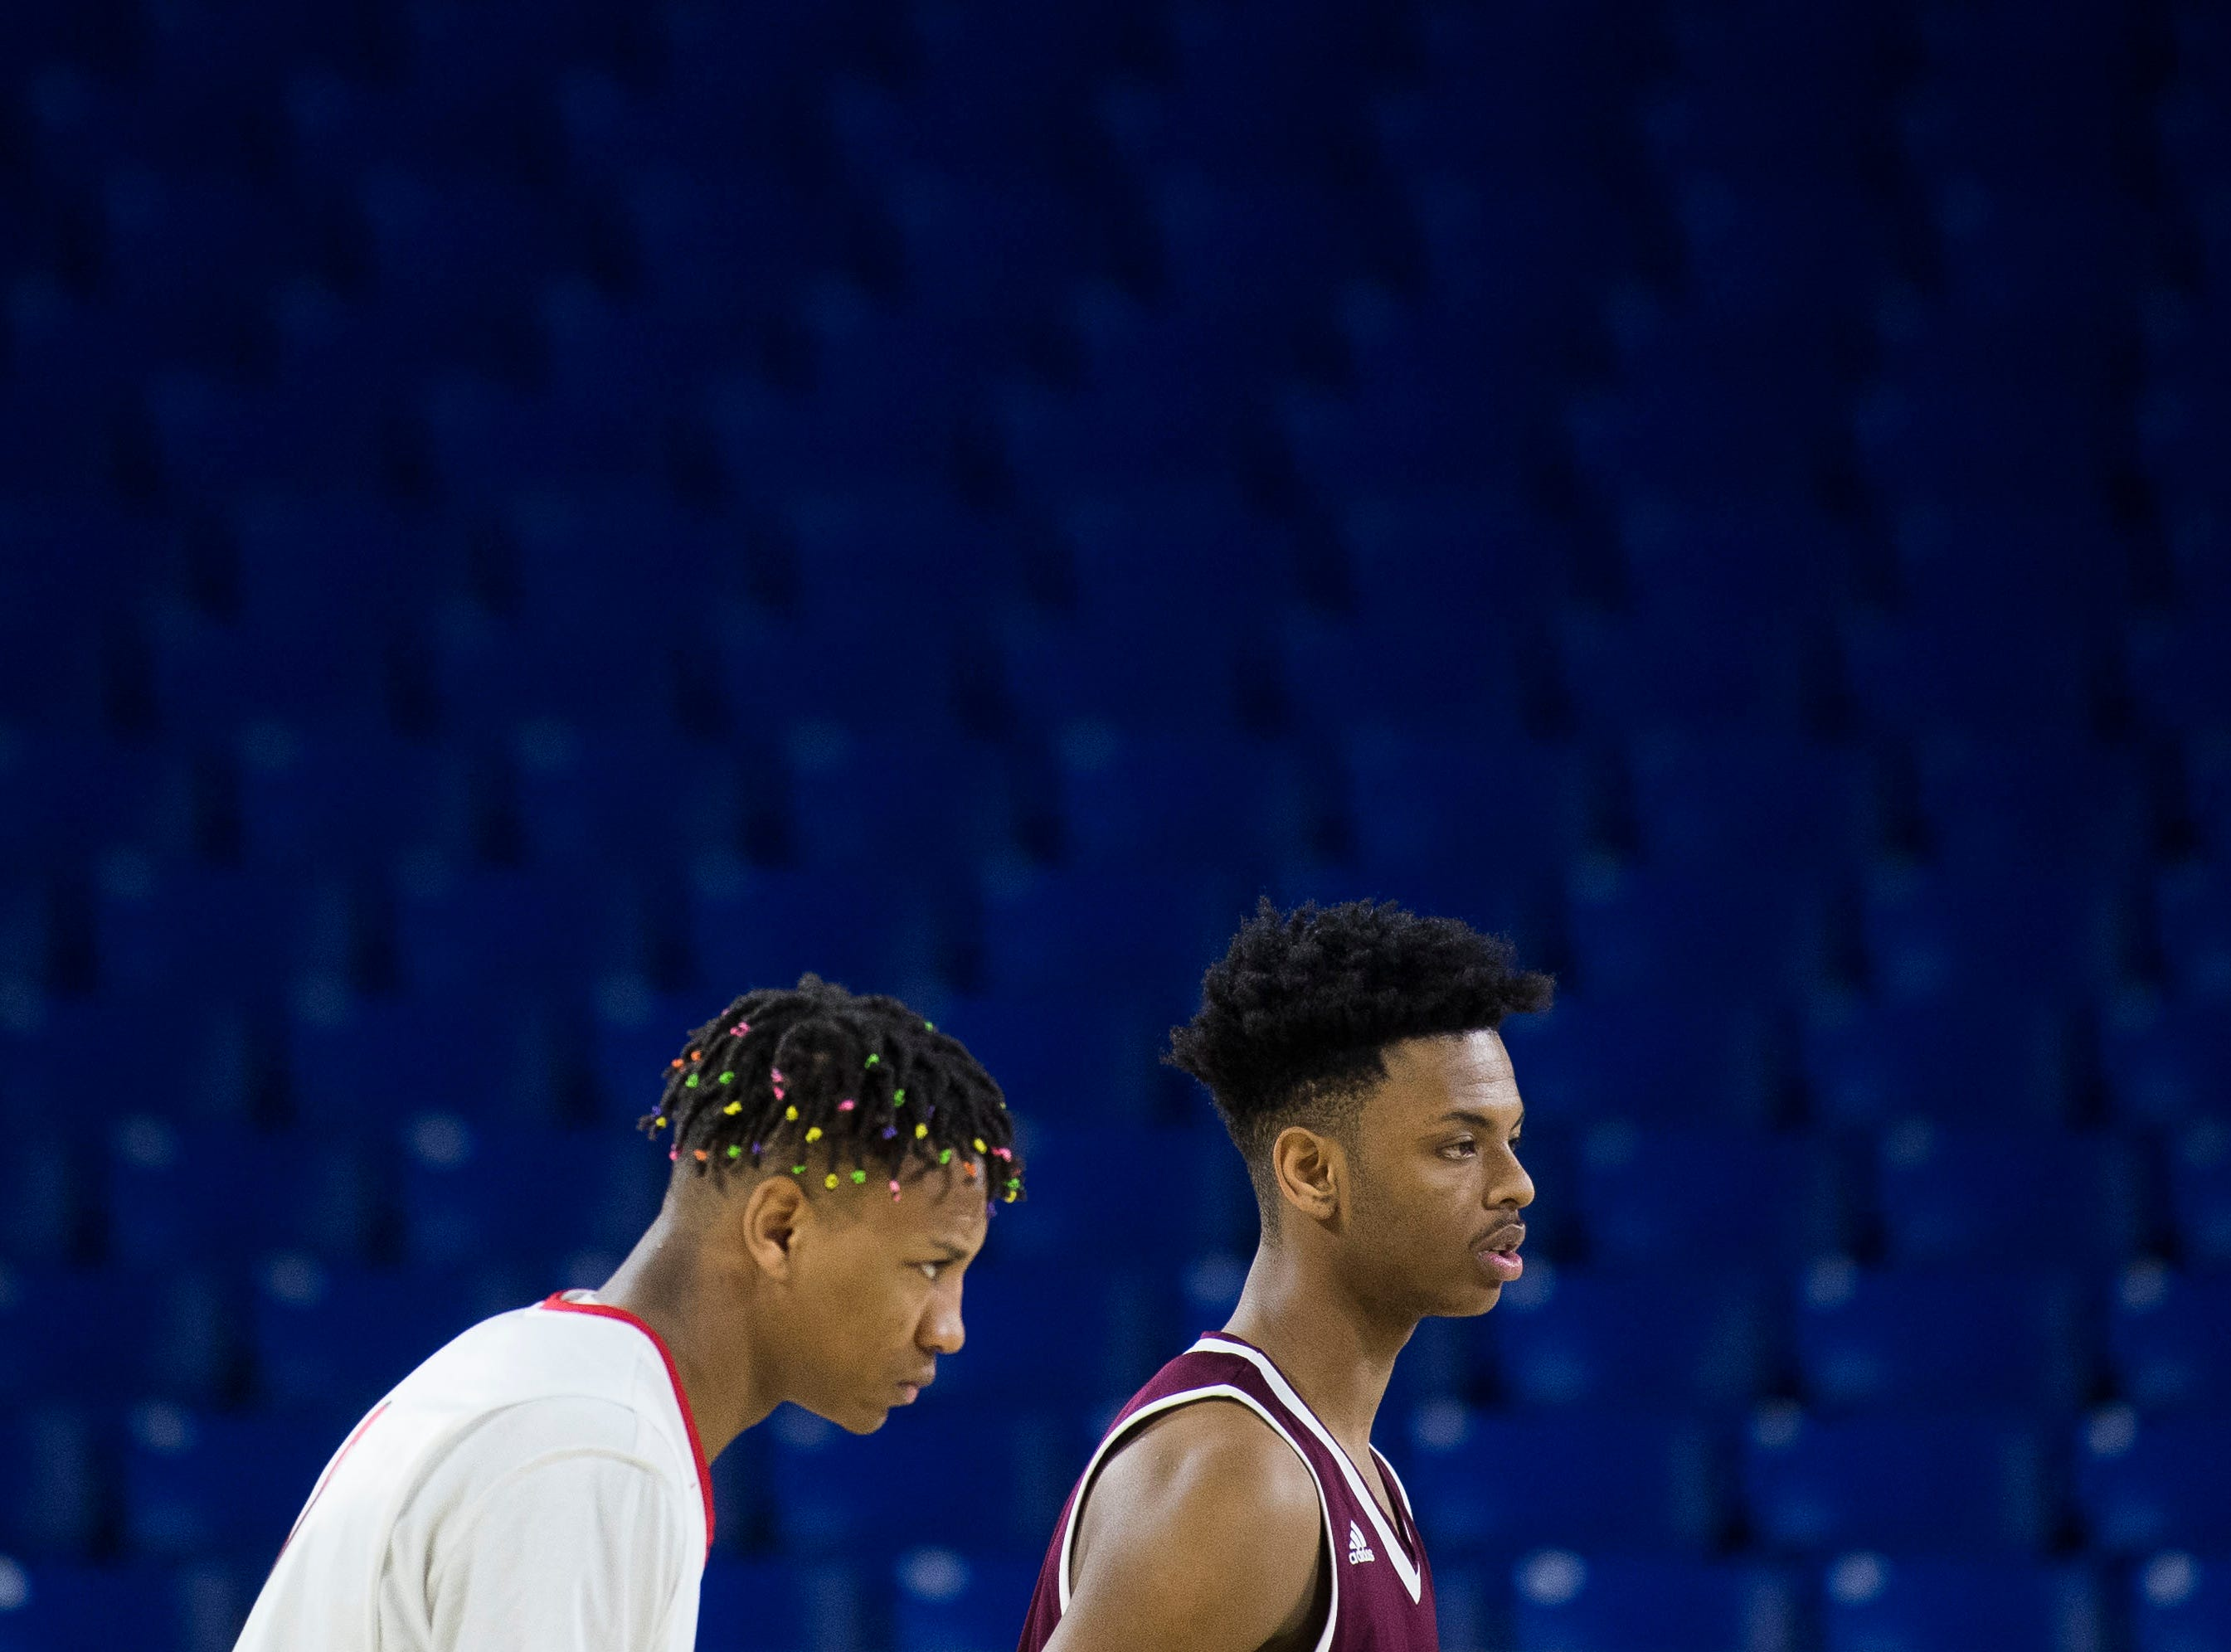 East NashvilleÕs Taras Carter (0) and FultonÕs Trey Davis (2) wait for the game to being before a TSSAA AA state semifinal game between East Nashville and Fulton at the Murphy Center in Murfreesboro, Friday, March 15, 2019.